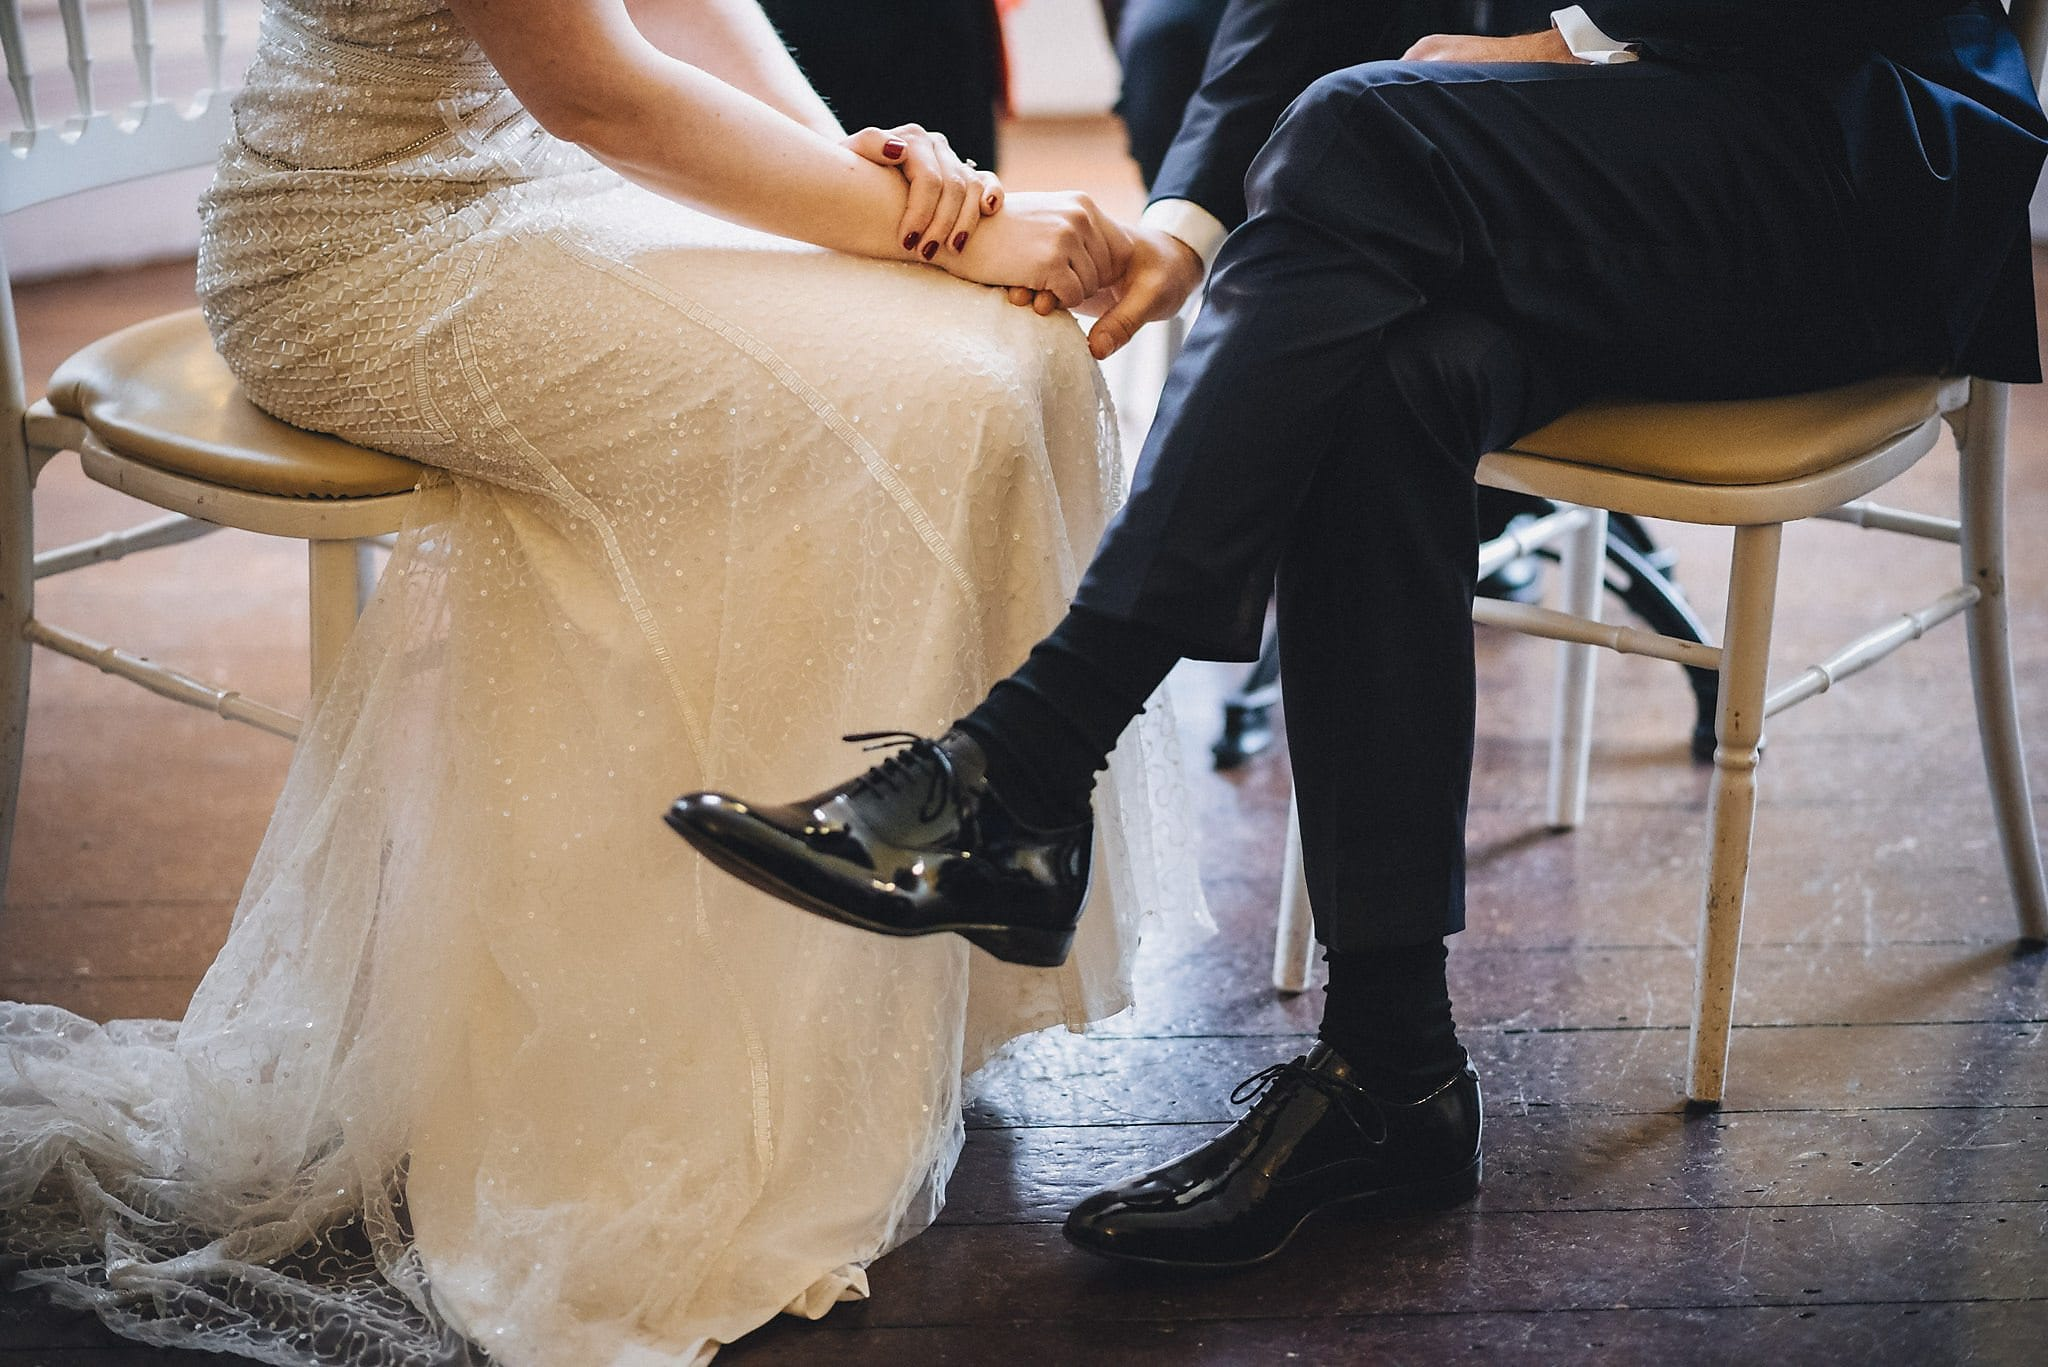 Shot of bride and groom's legs and shoes while seated at wedding ceremony